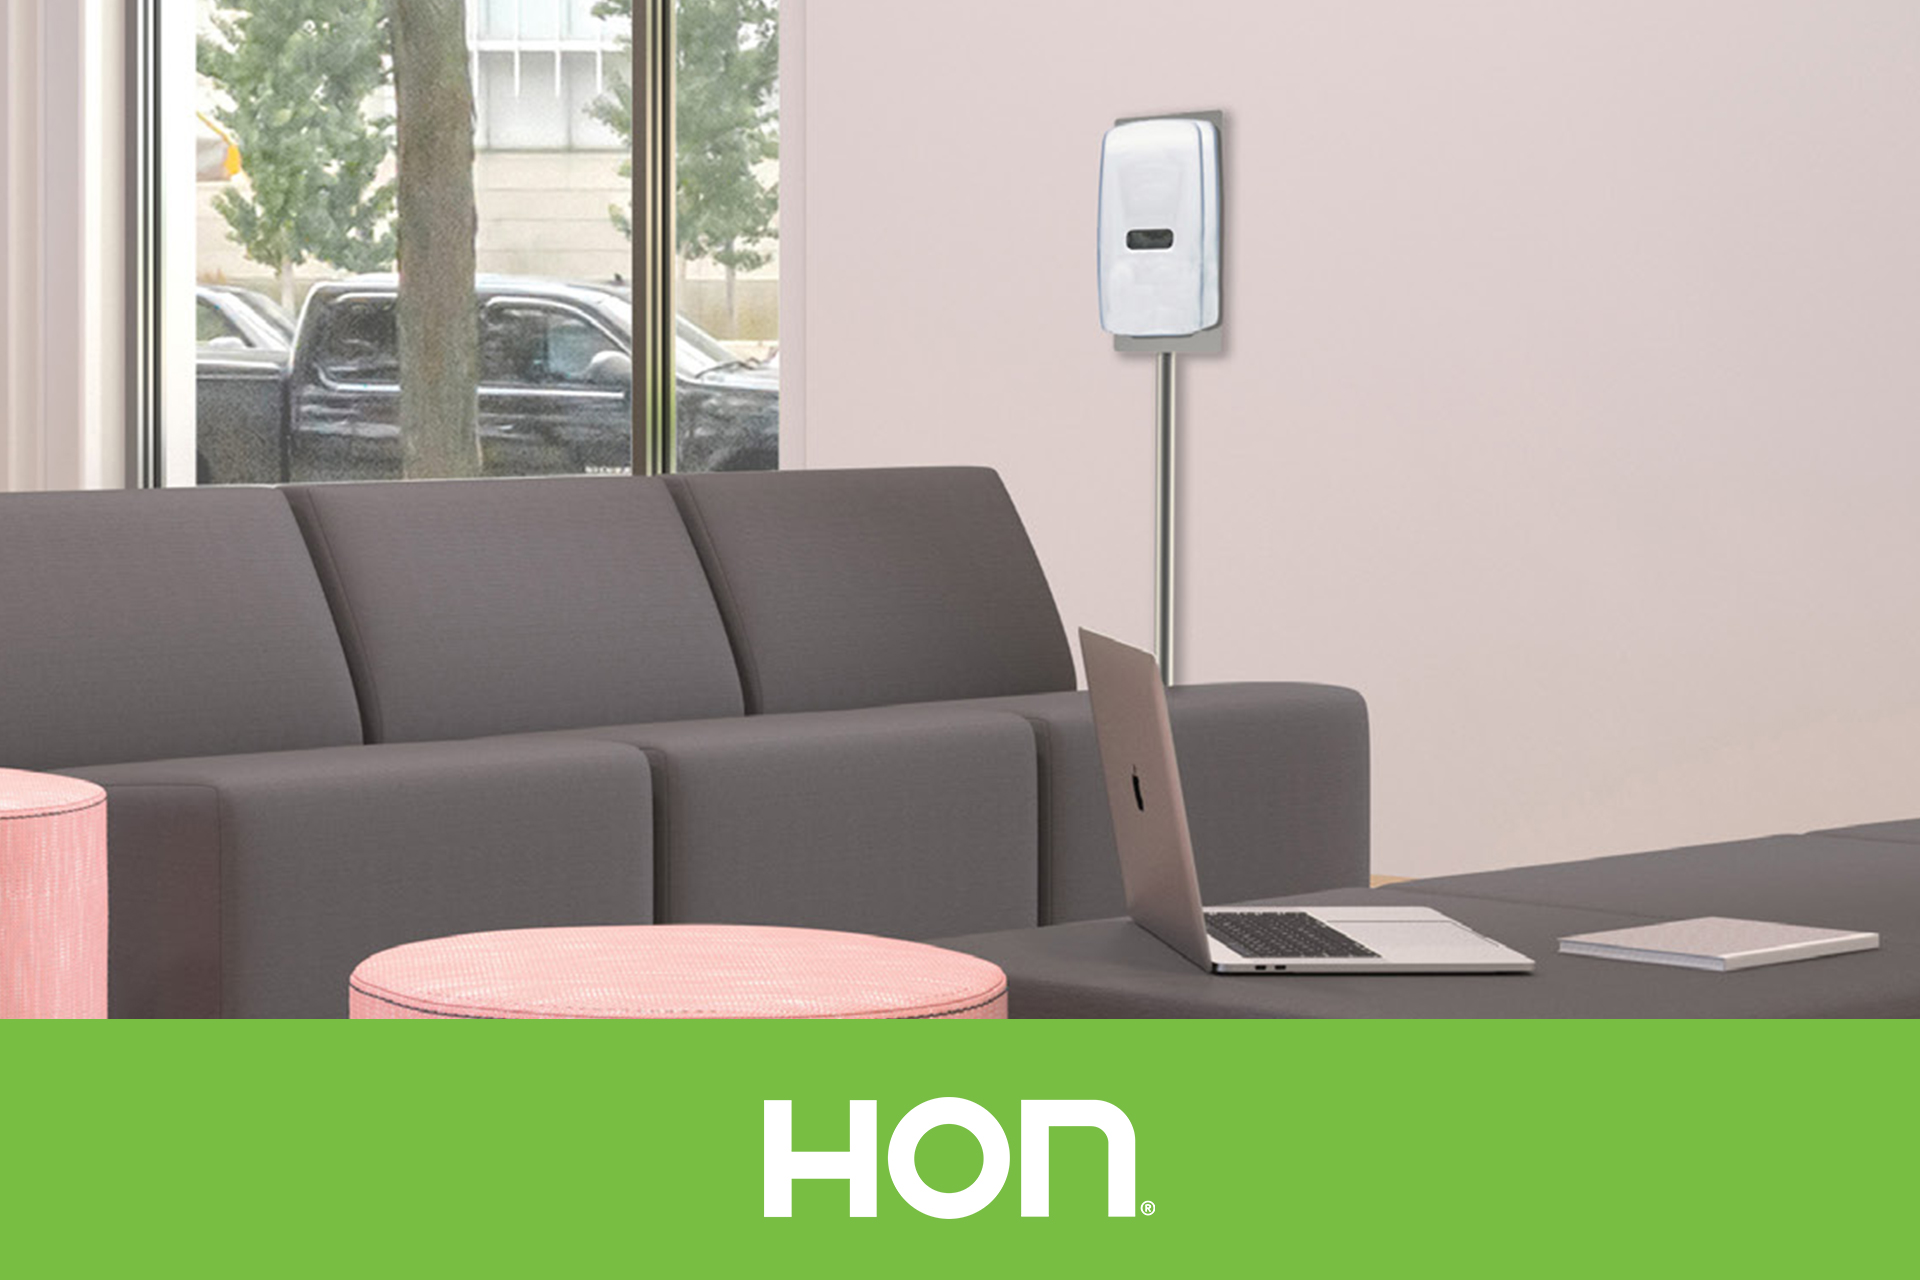 Hon Now Hand Sanitizer Station Products For Physical Distancing